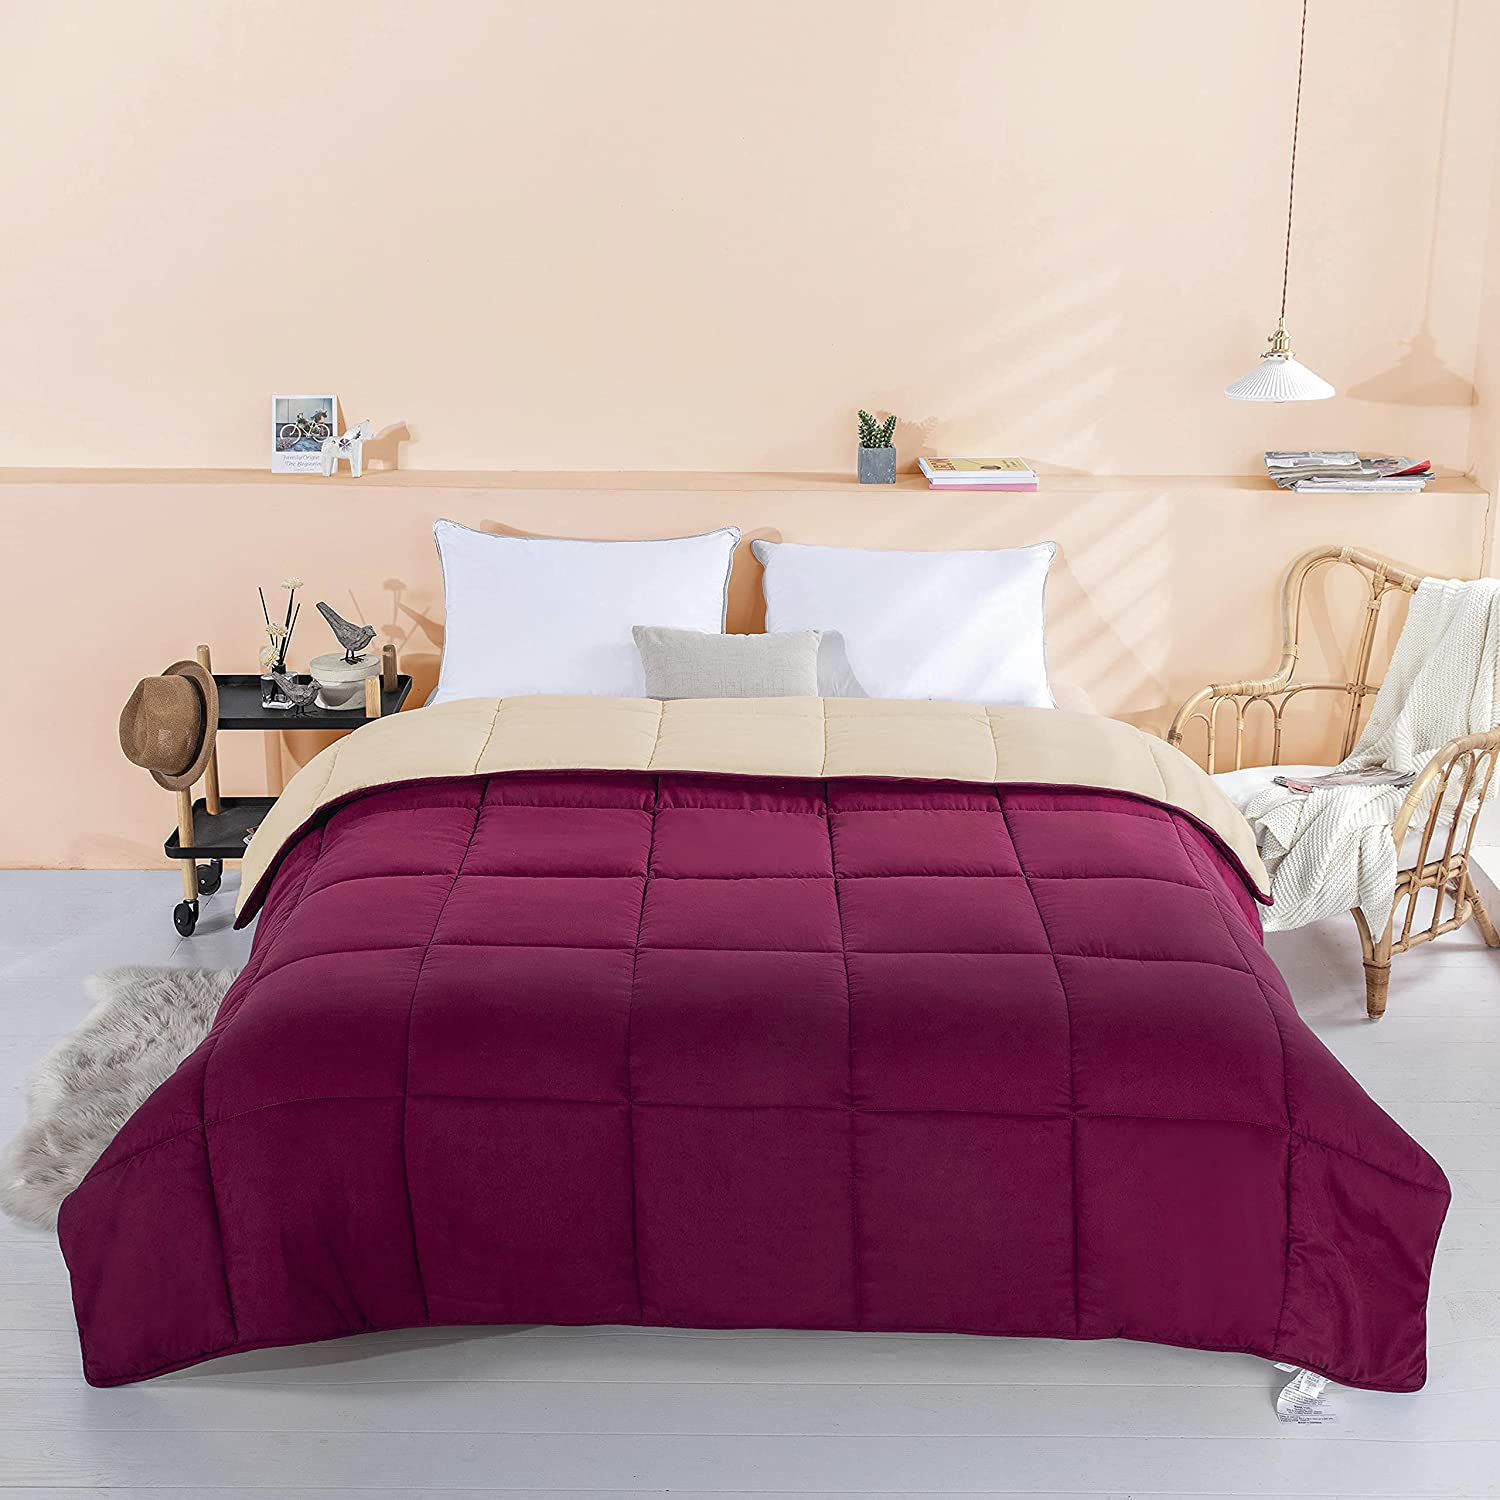 Seward Park King Size Comforter Bed for All items free Regular discount shipping Down Lightweight Alterna